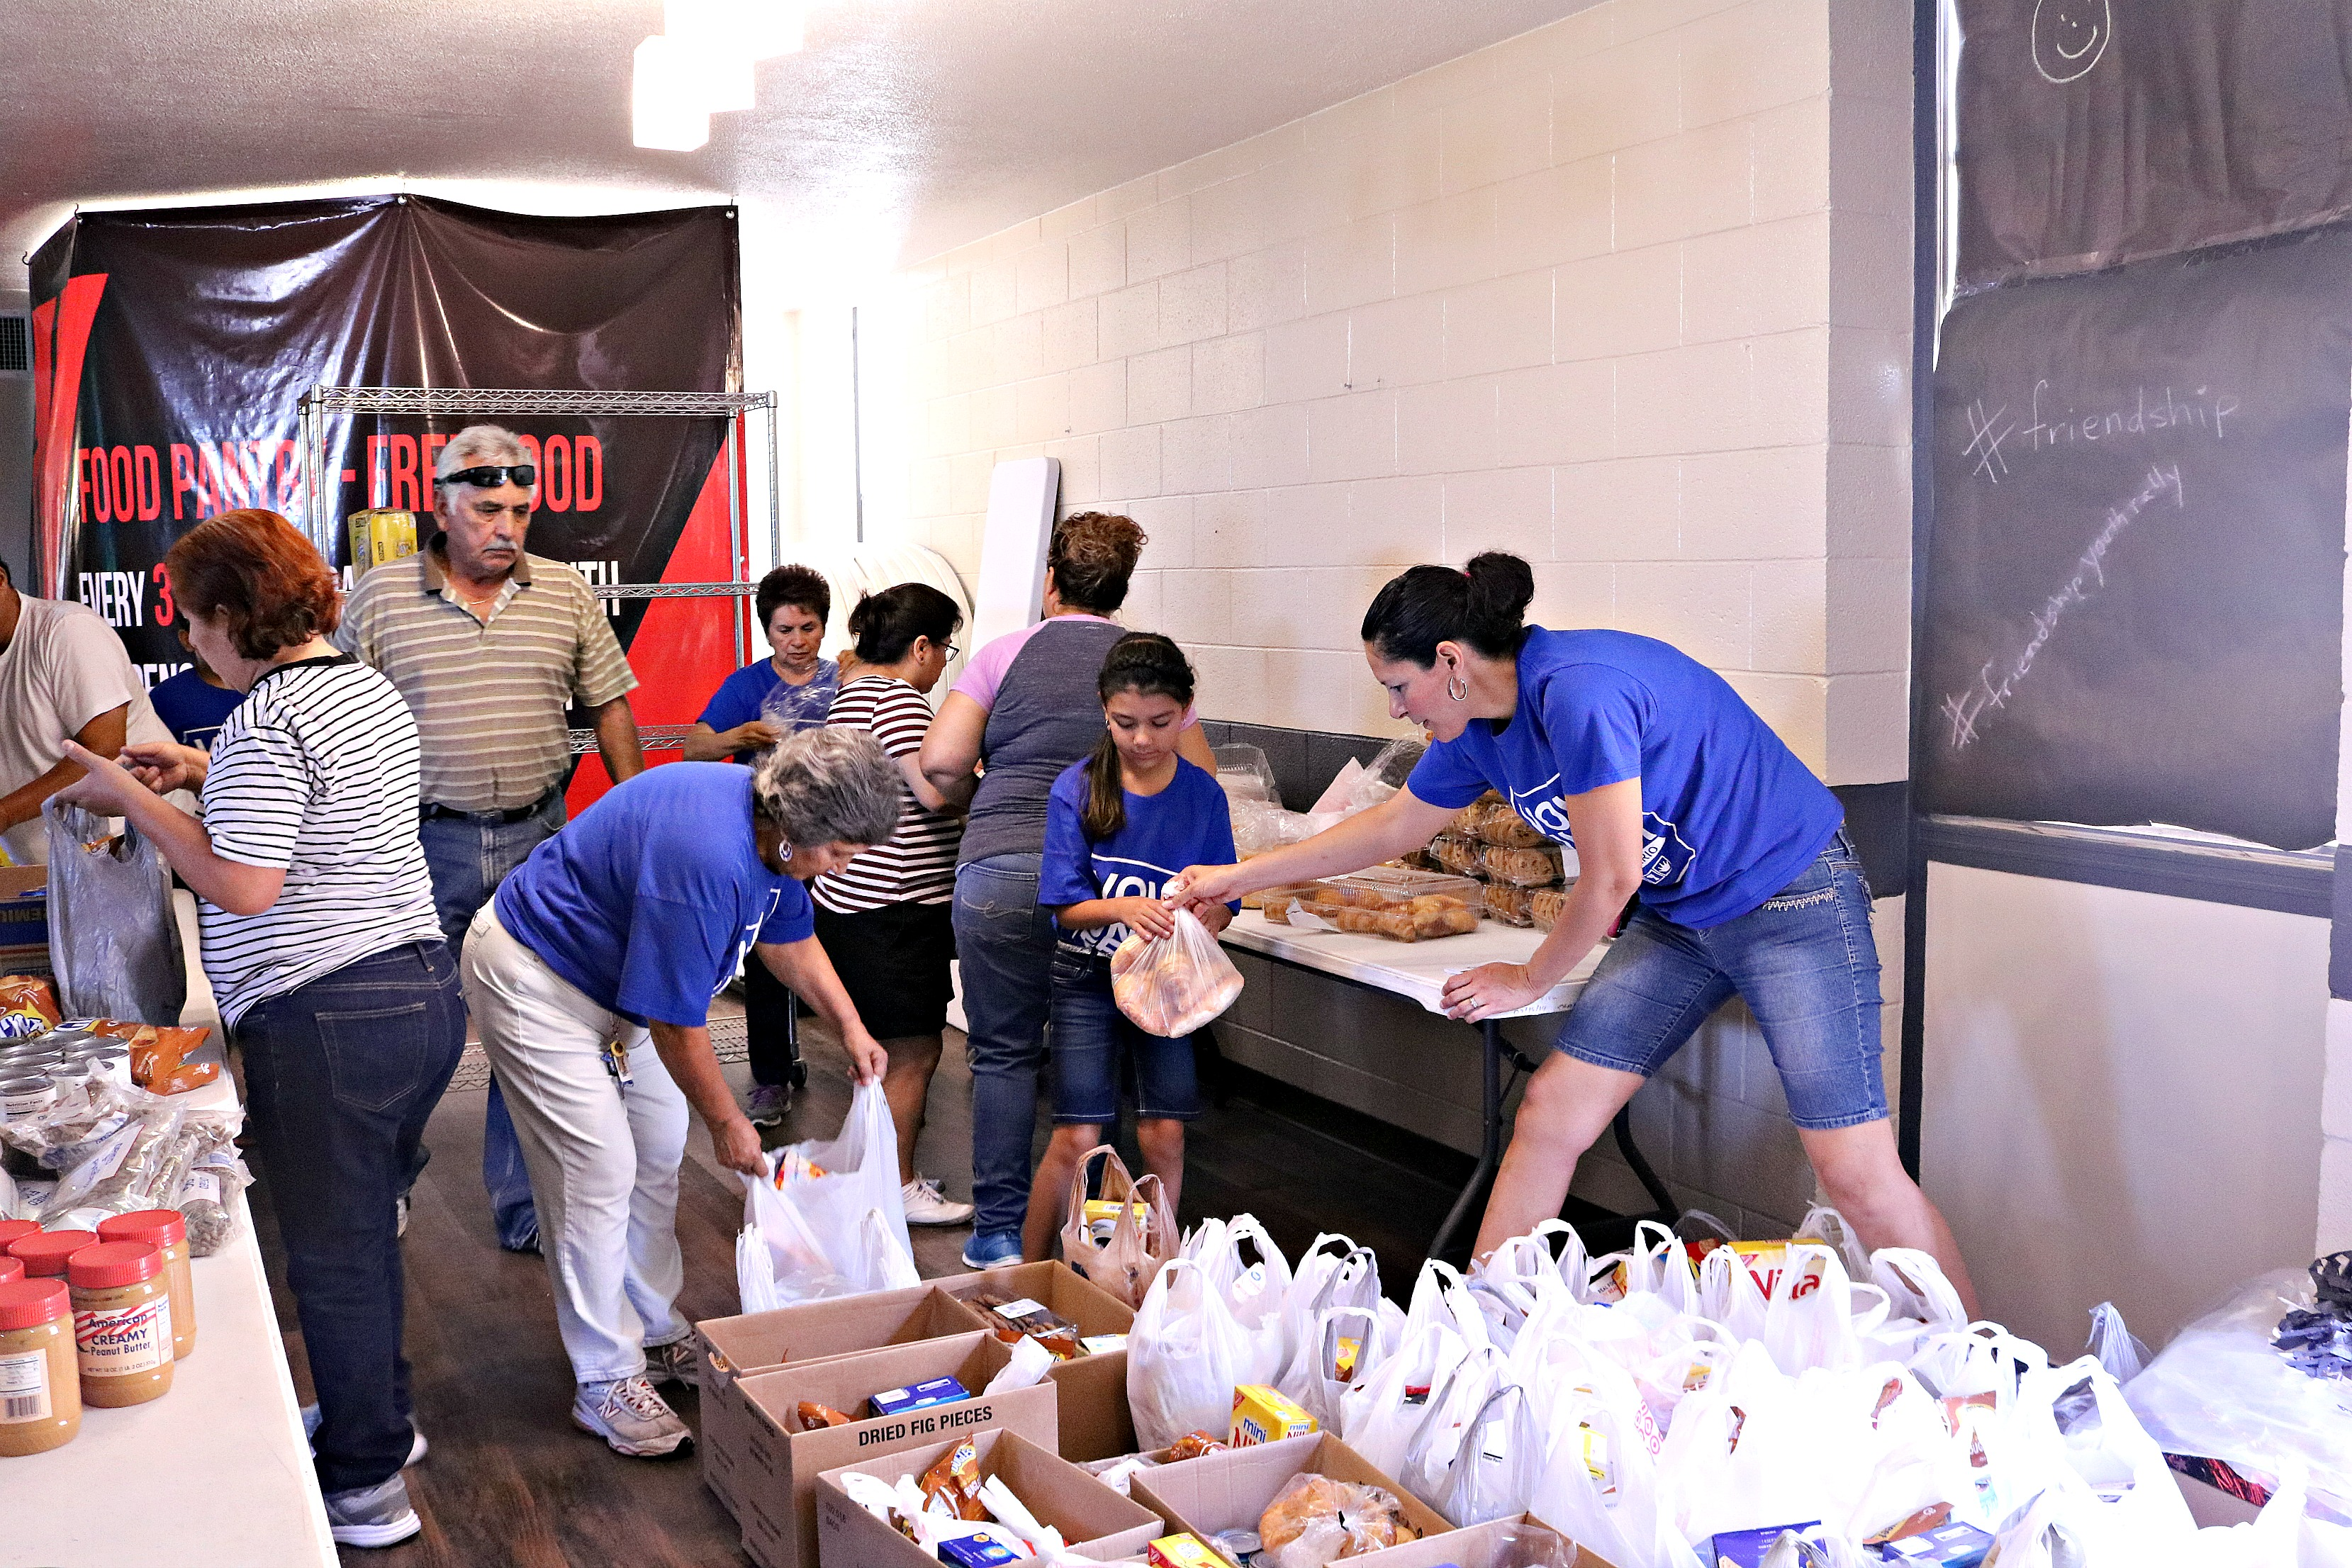 Food Bank: July's Monthly Food Pantry in El Paso